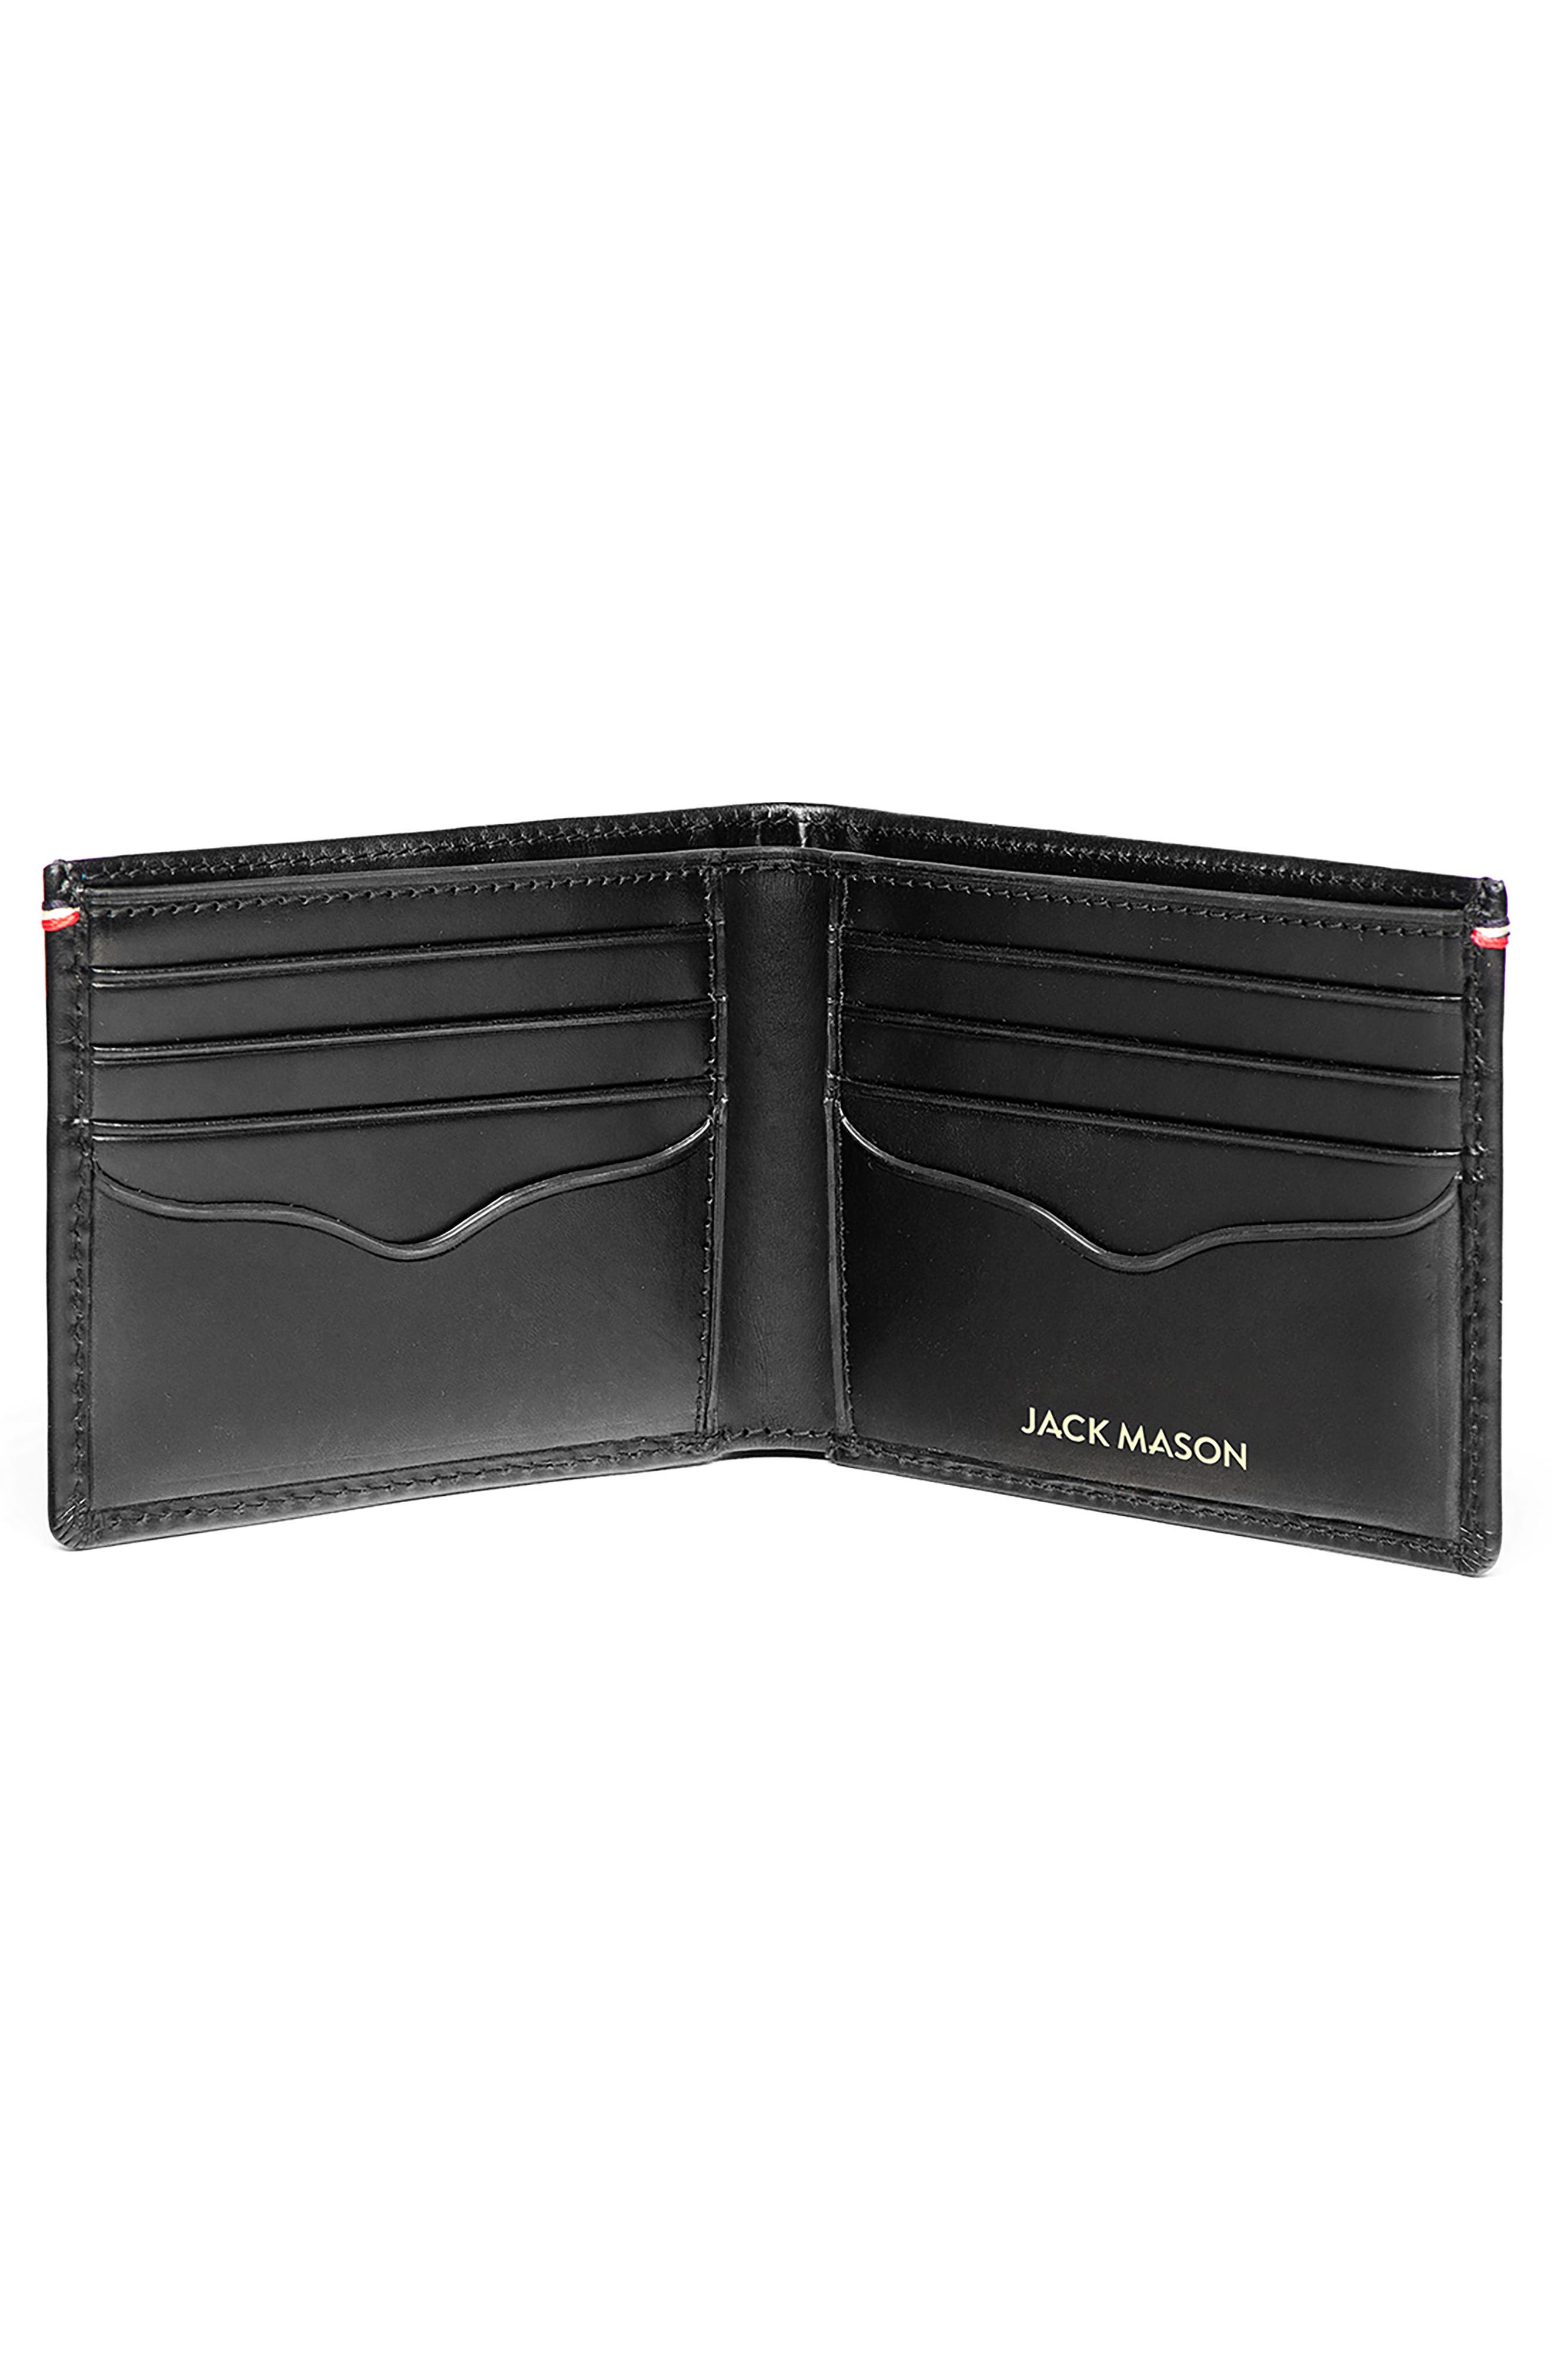 Core Leather Wallet,                             Alternate thumbnail 2, color,                             Black